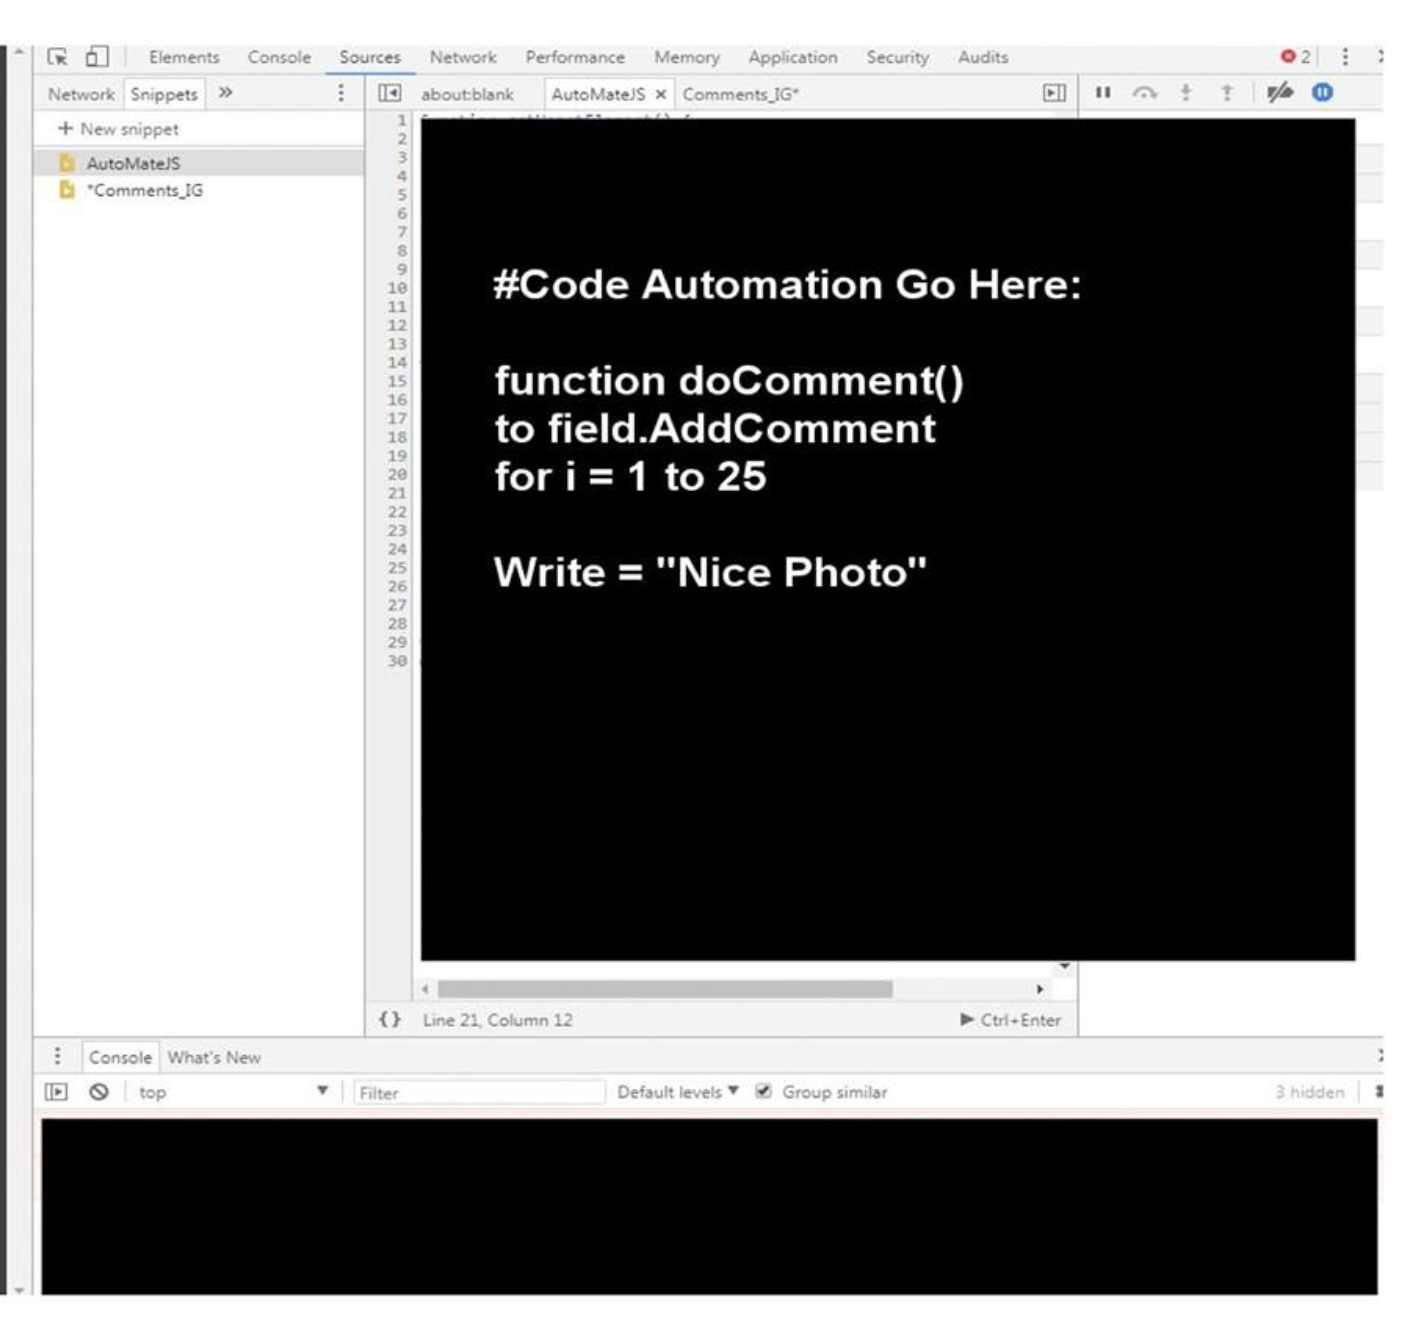 """Botting"""" and Task Automation on Social Media - By"""